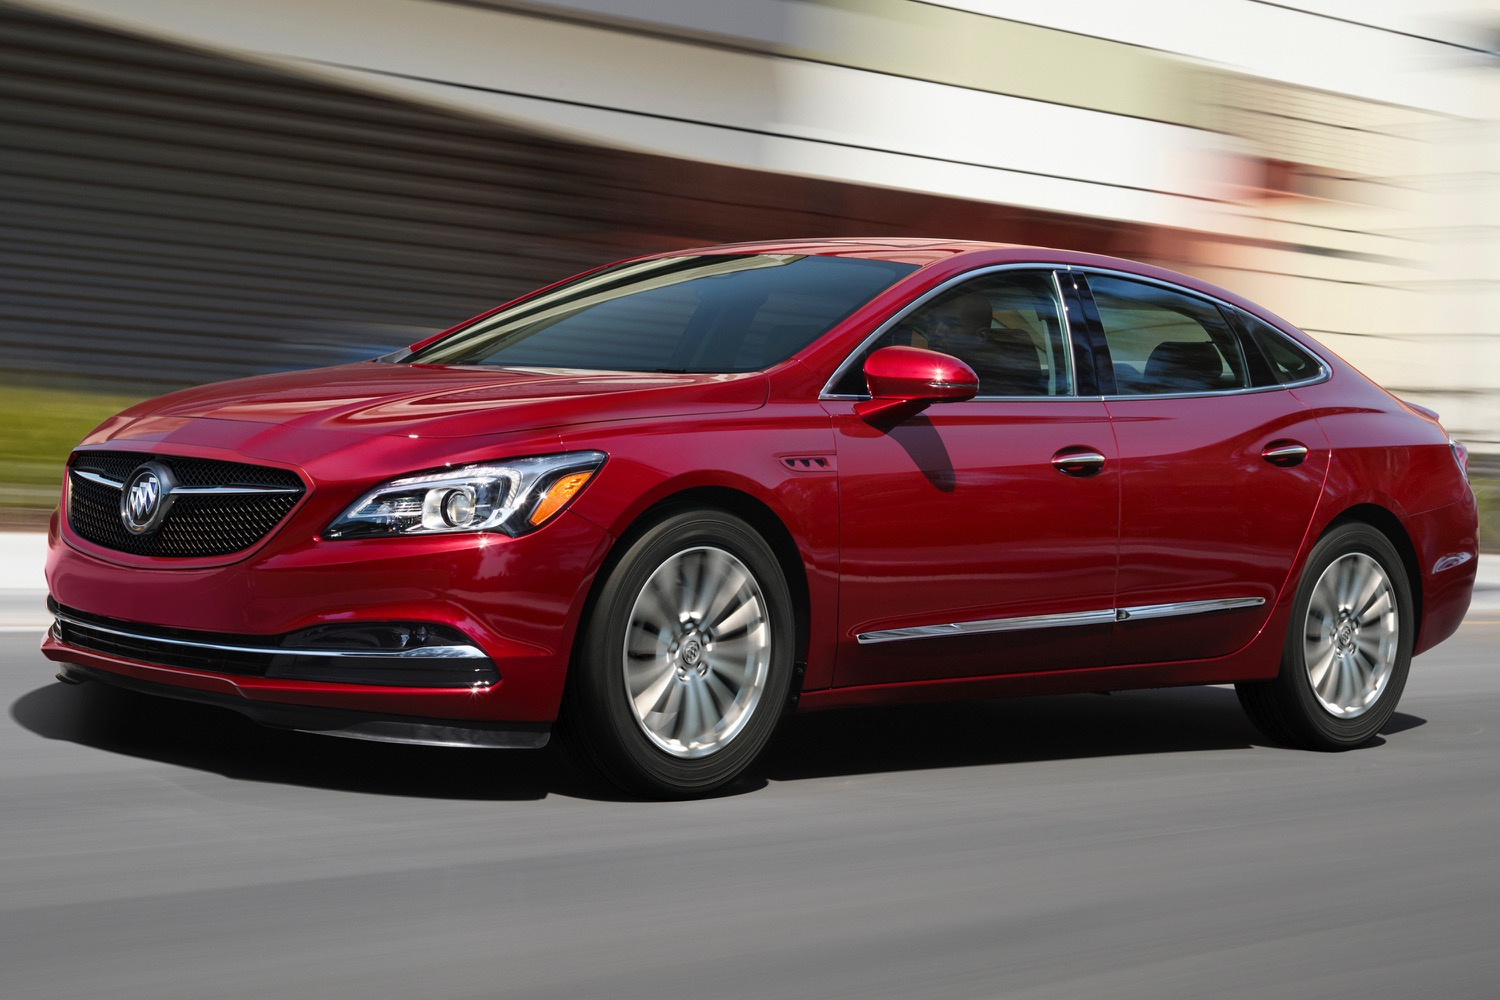 Buick Lacrosse Discount Totals $9,000 February 2020 | Gm New 2022 Buick Lacrosse Lease Deals, Engine, Price